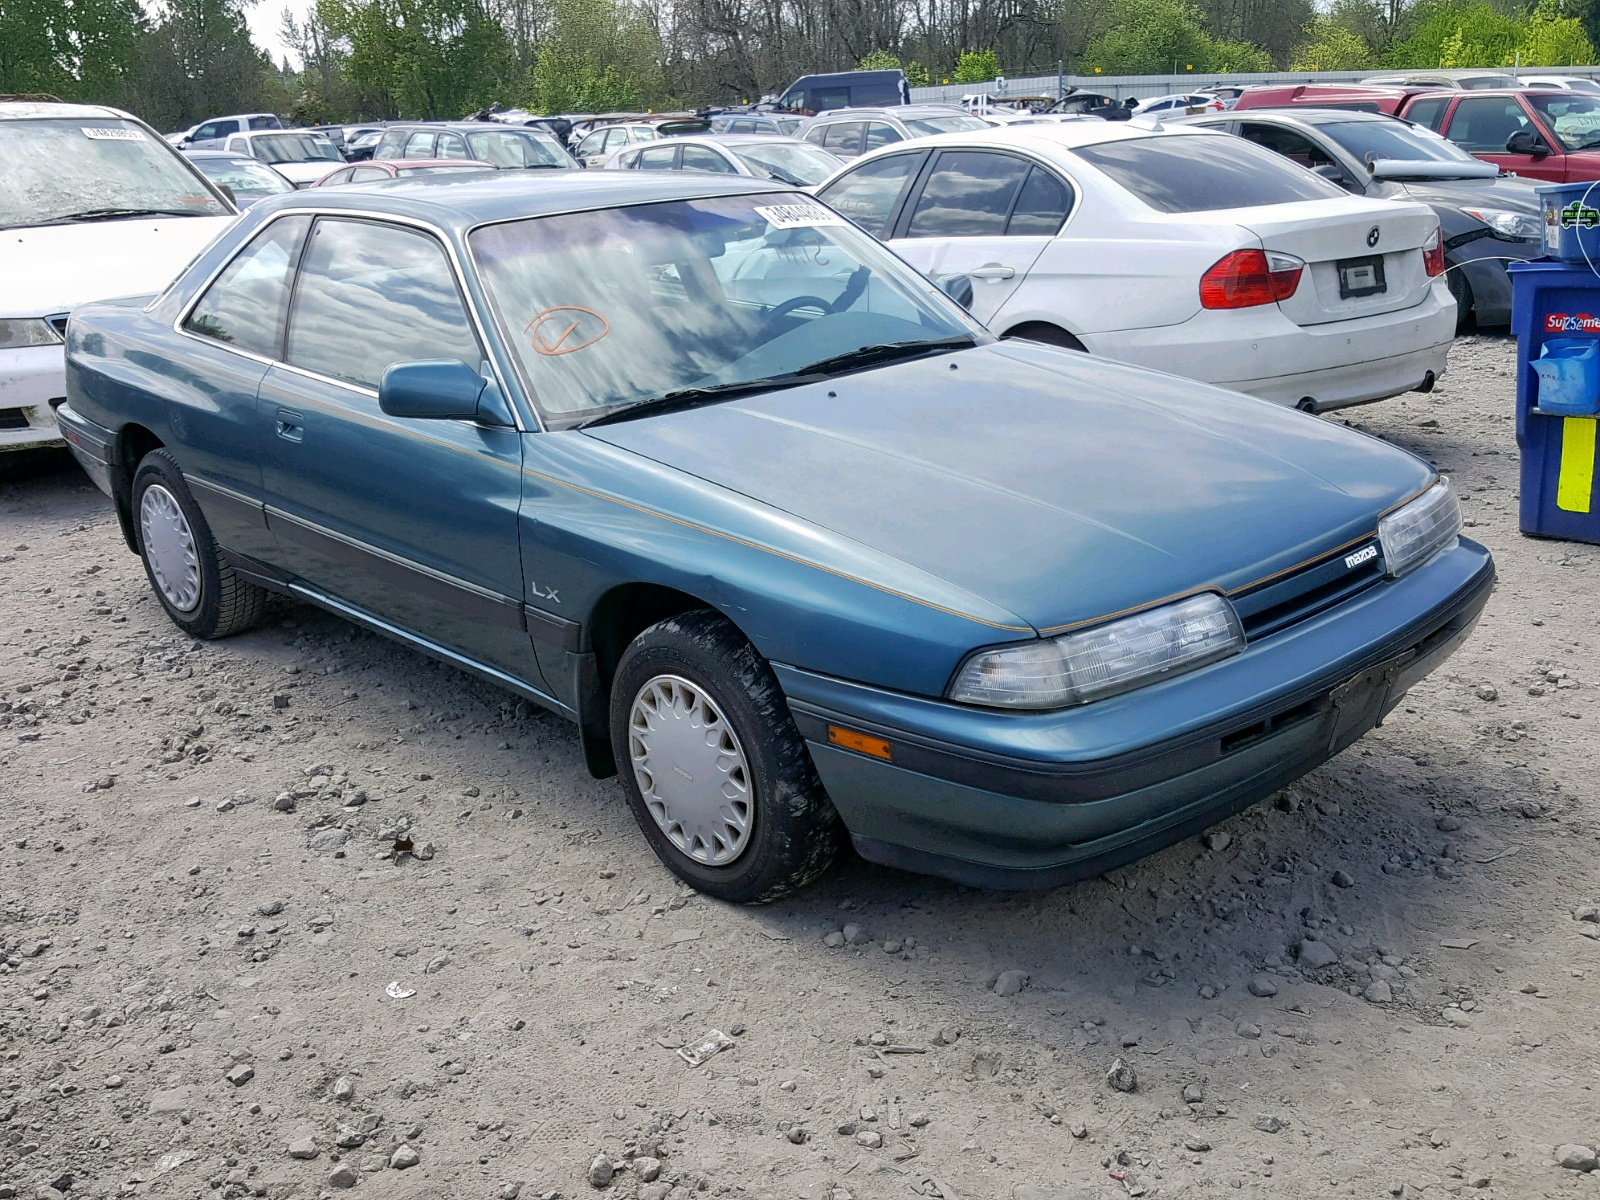 Salvage 1991 Mazda MX-6 for sale